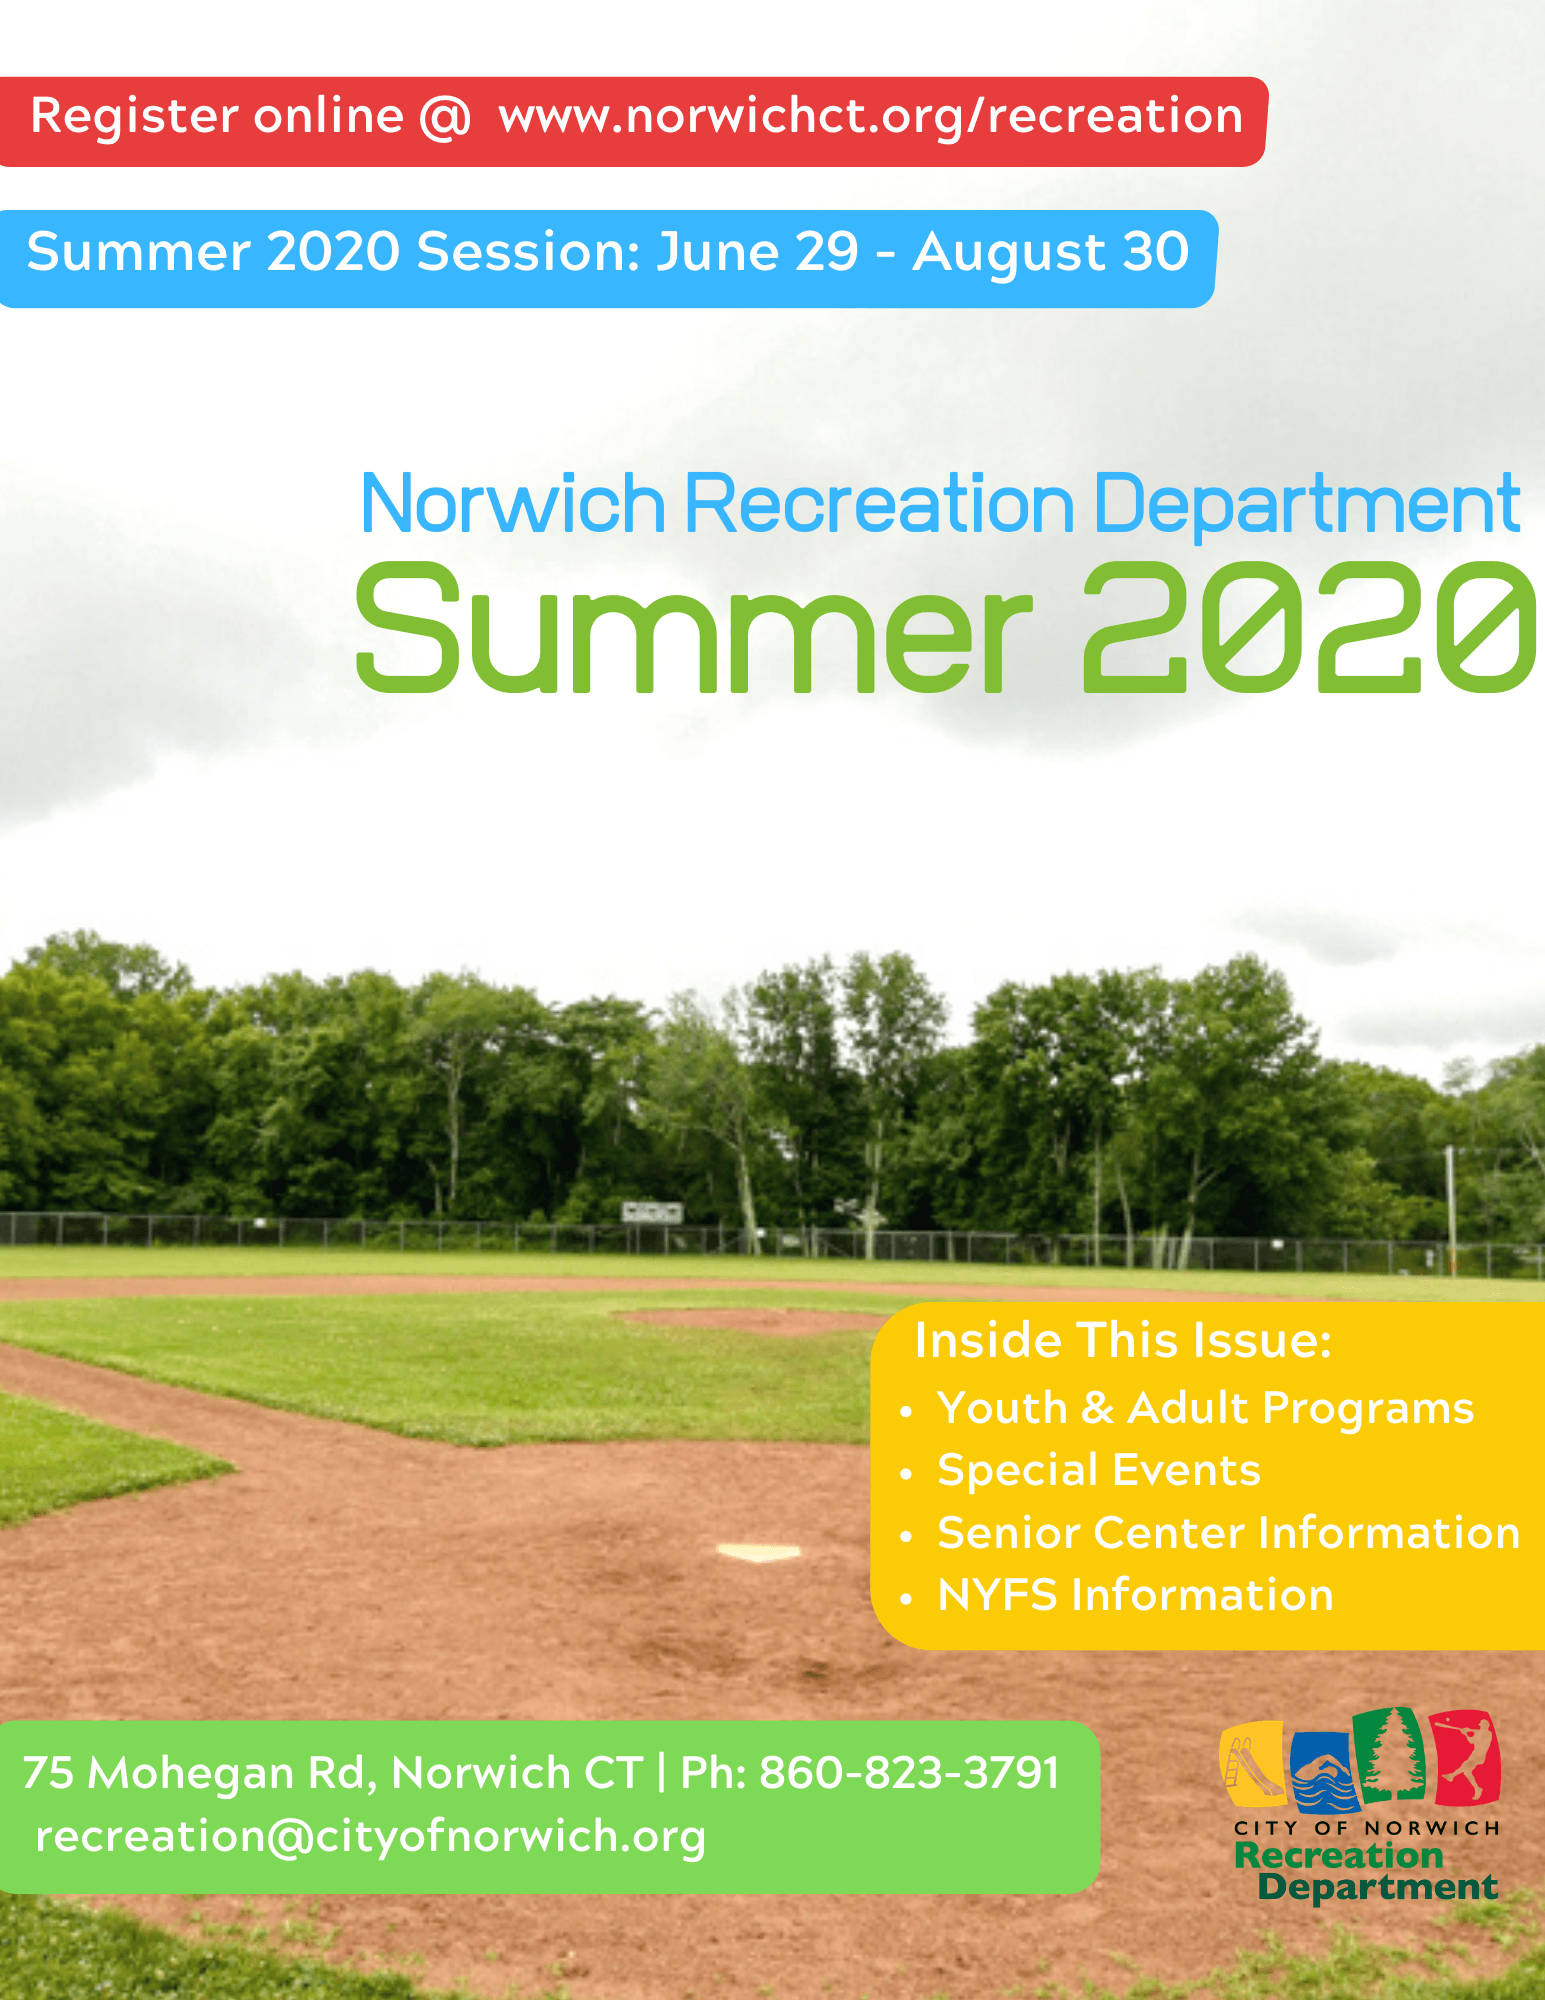 Summer 2020 Brochure Opens in new window